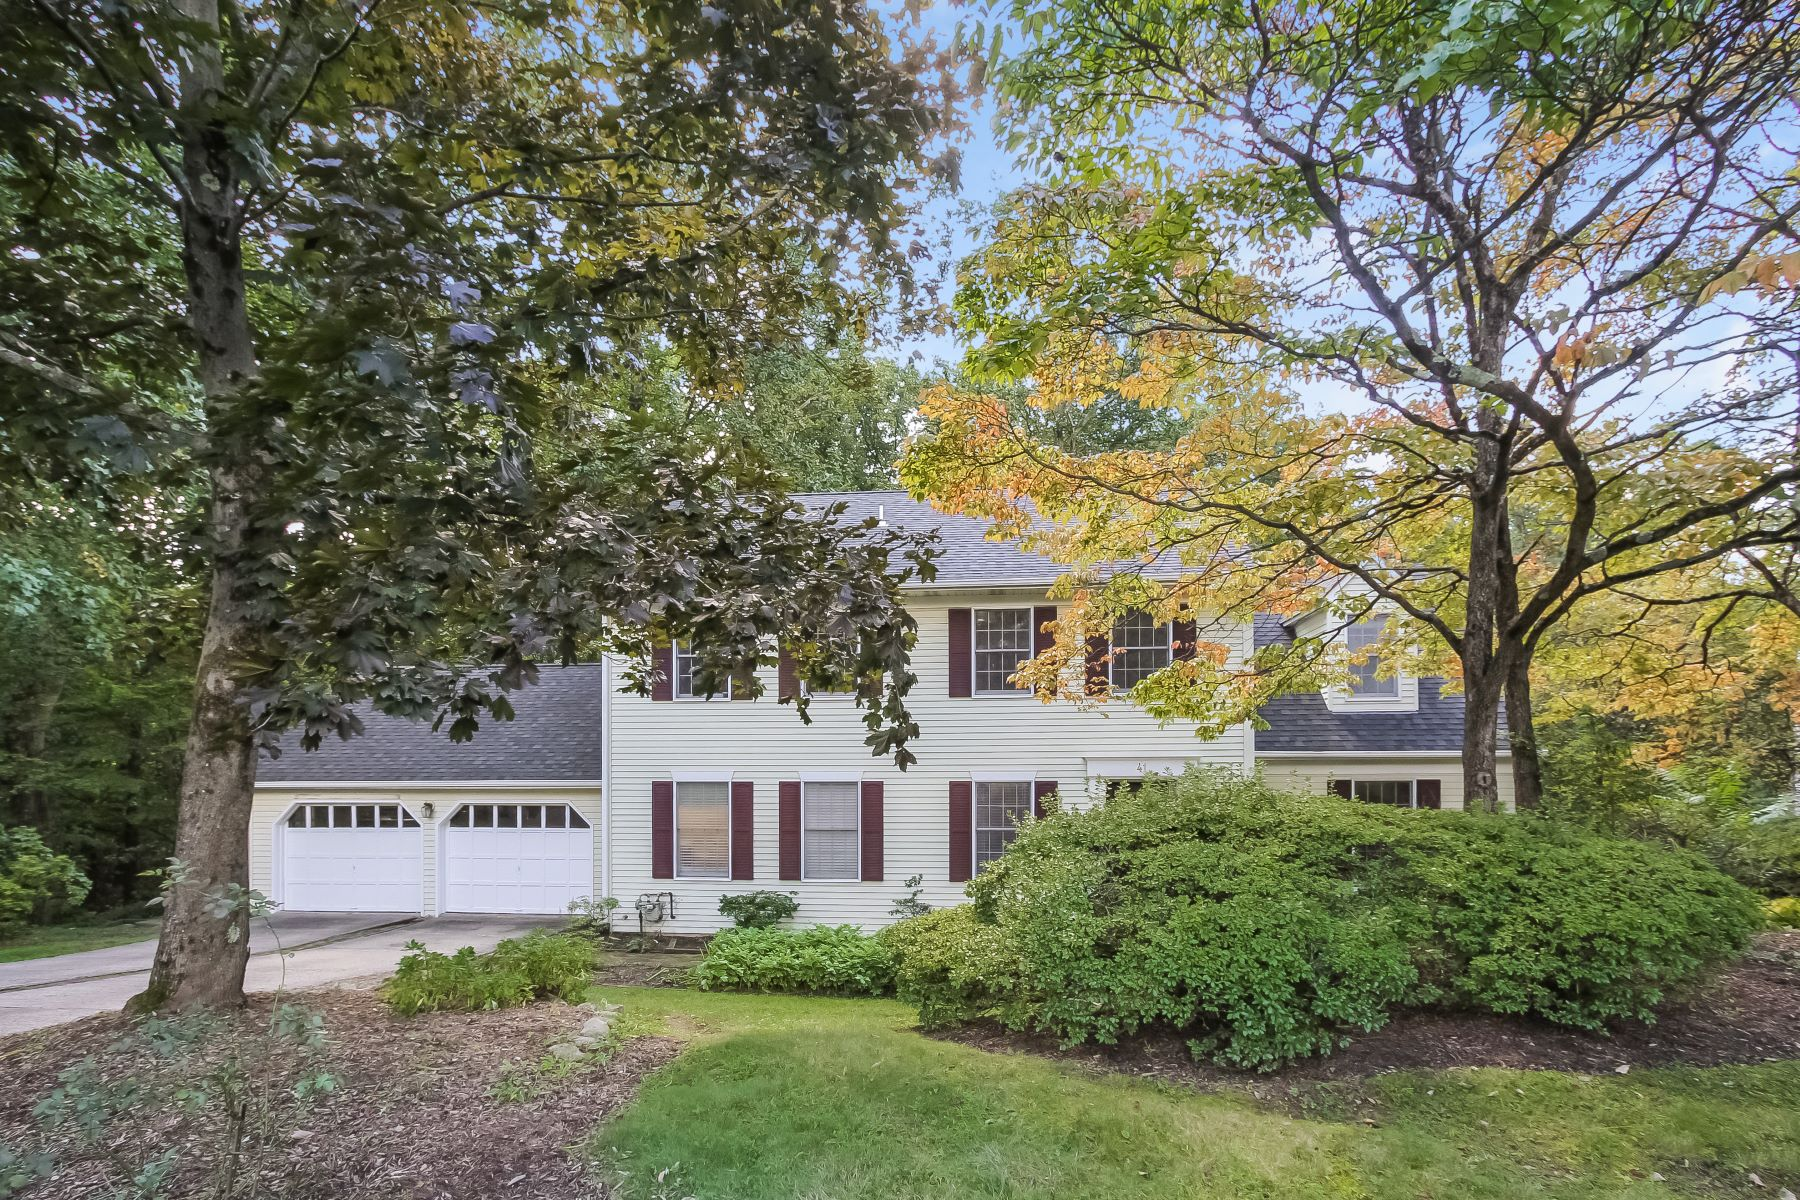 Single Family Home for Sale at Spacious Colonial 41 Maple Village Court Bernardsville, New Jersey 07924 United States